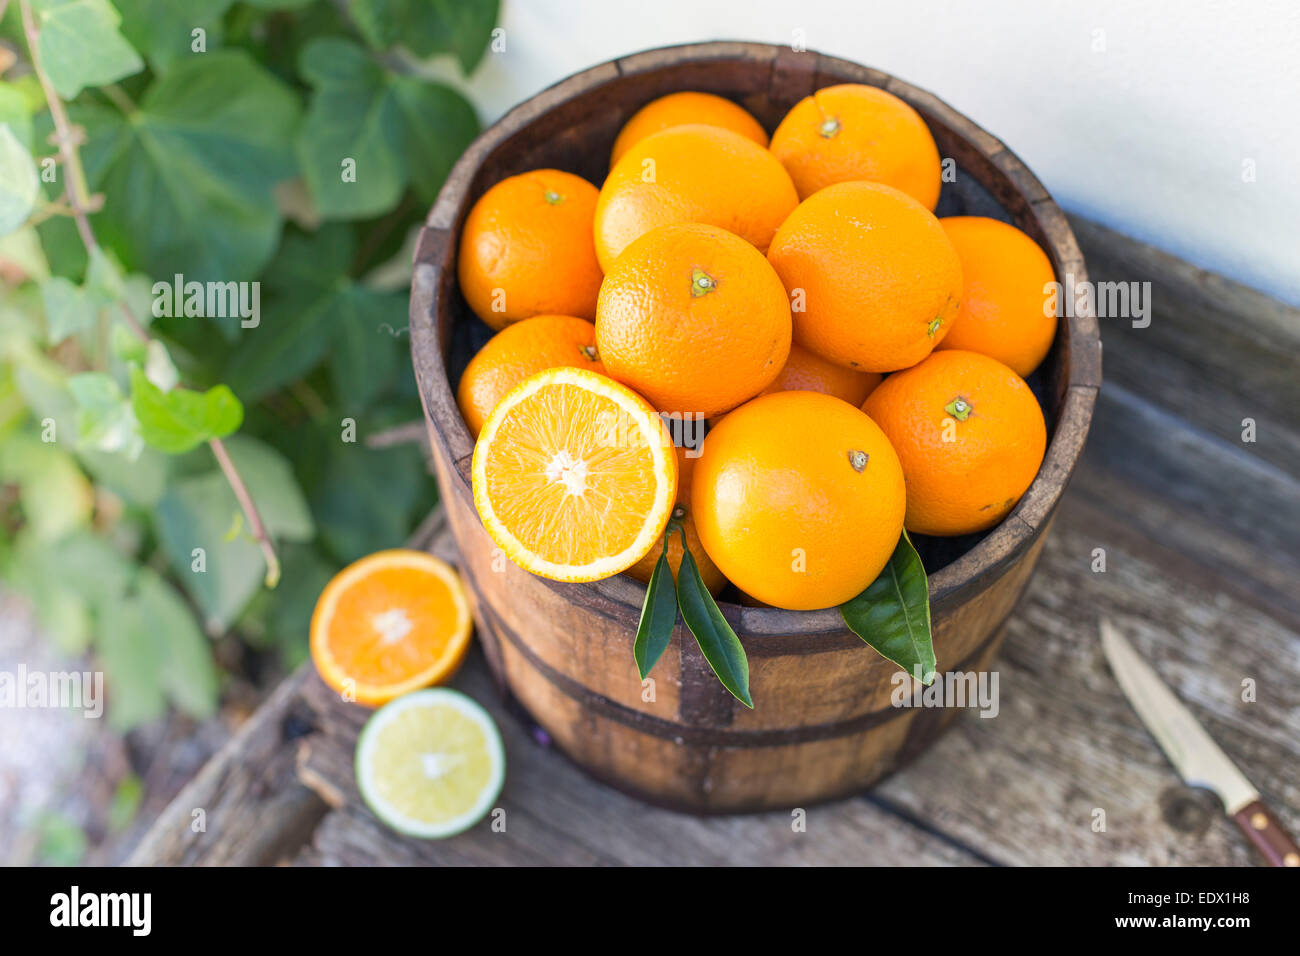 bucket of oranges on an old wooden bench against ivy covered white wall - Stock Image